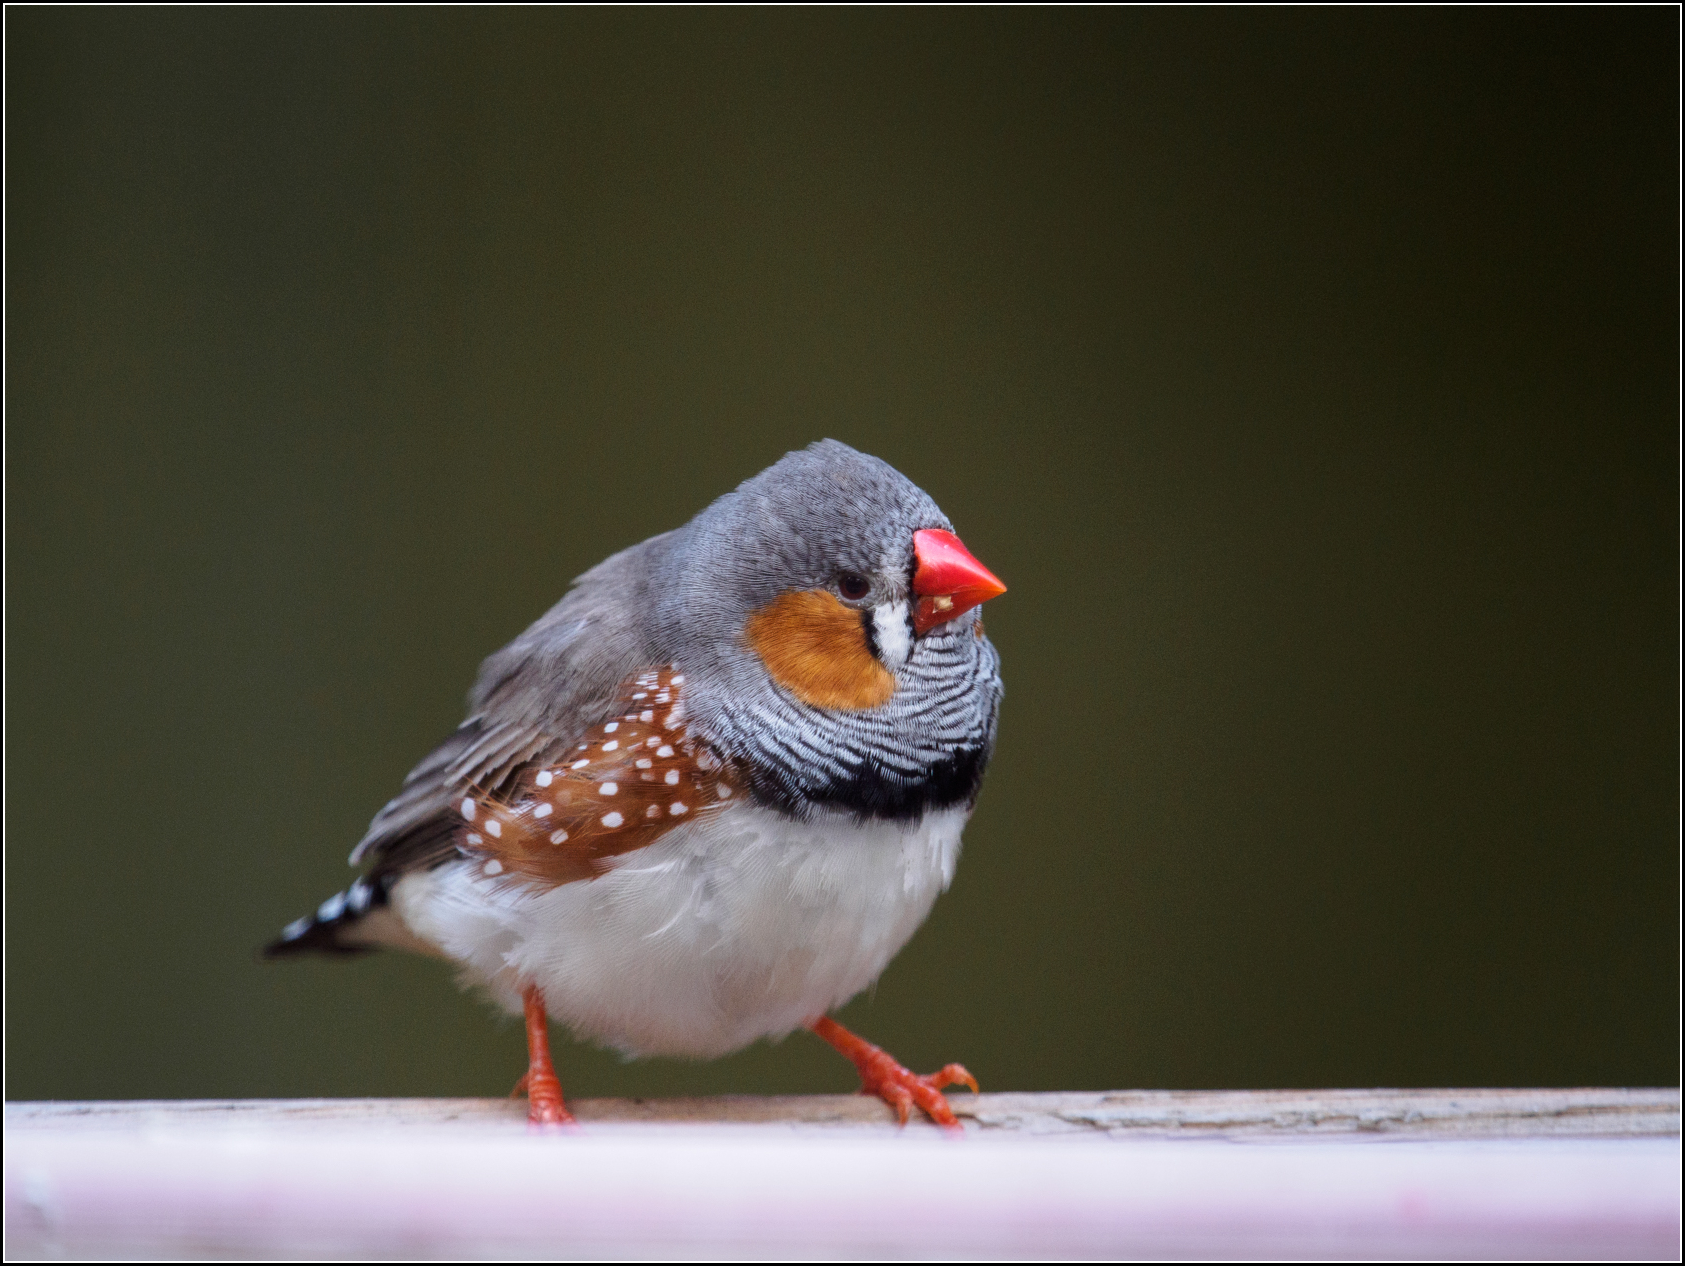 Zebra Finches are native to Australia but have become excellent lab models for scientists to study the neuroscience of song learning.